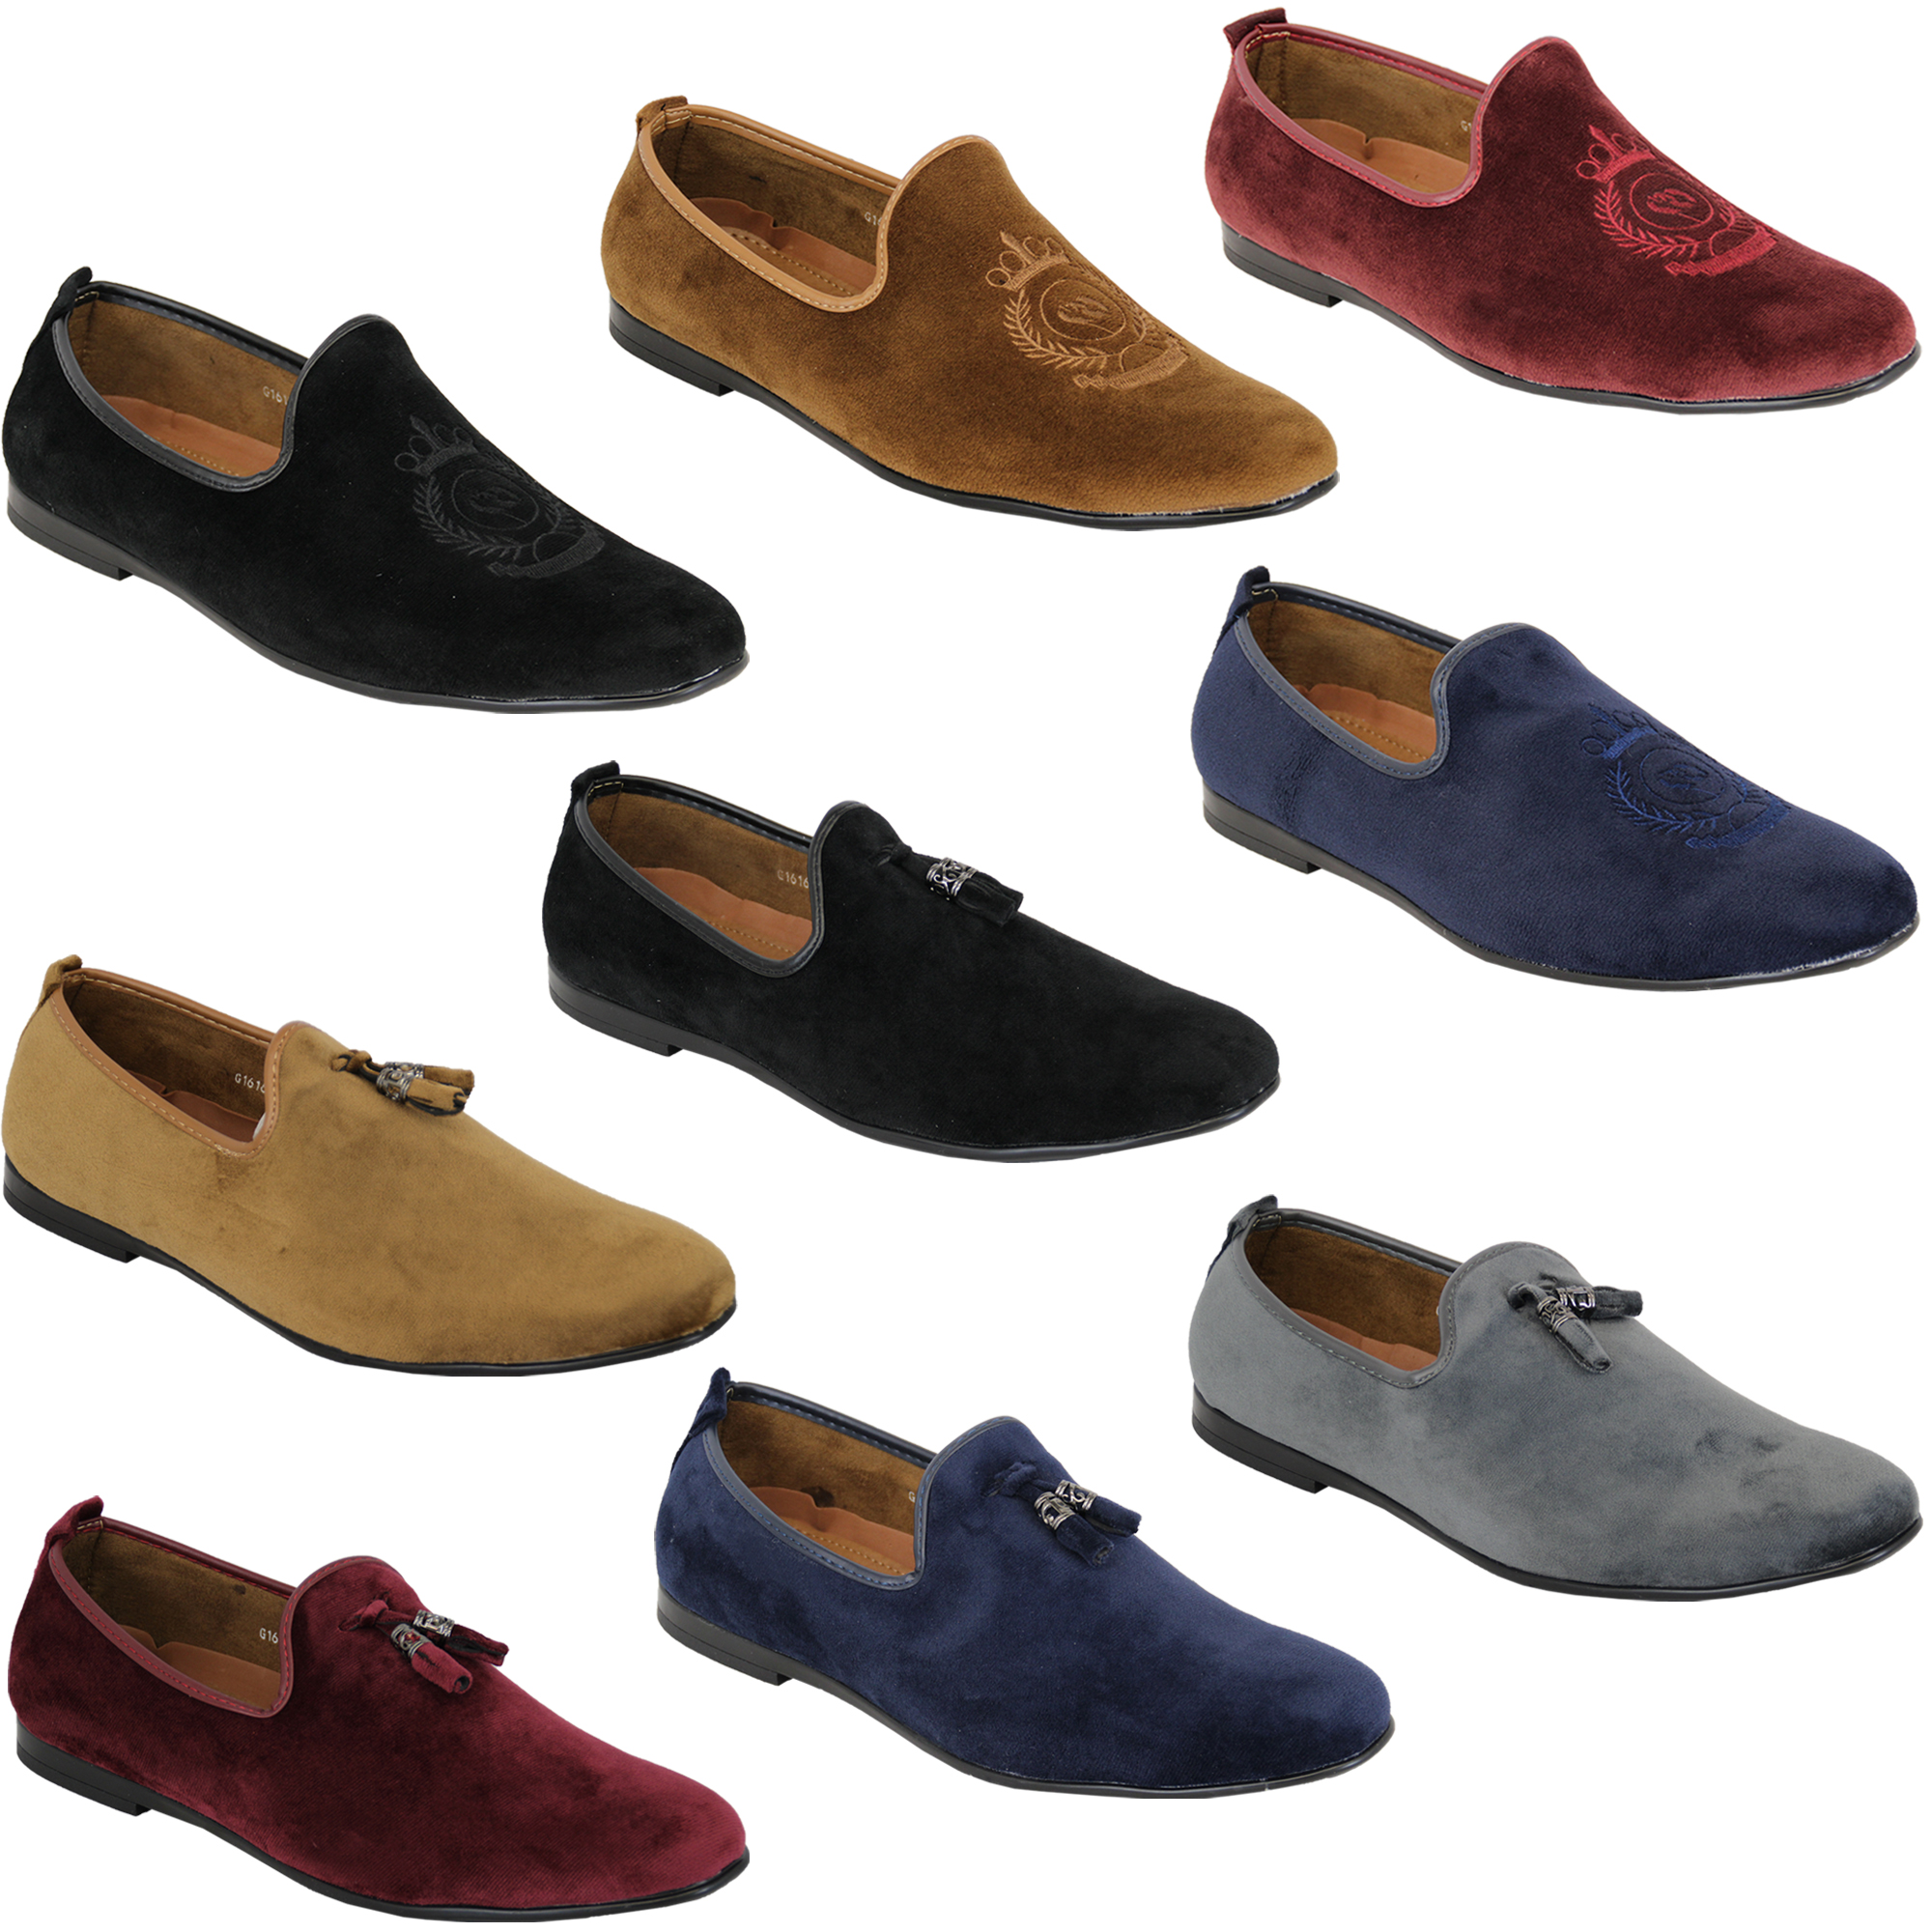 ad4a46bd853 Mens Shoes Slip On Italian Designer Loafers Suede Look Tassels ...